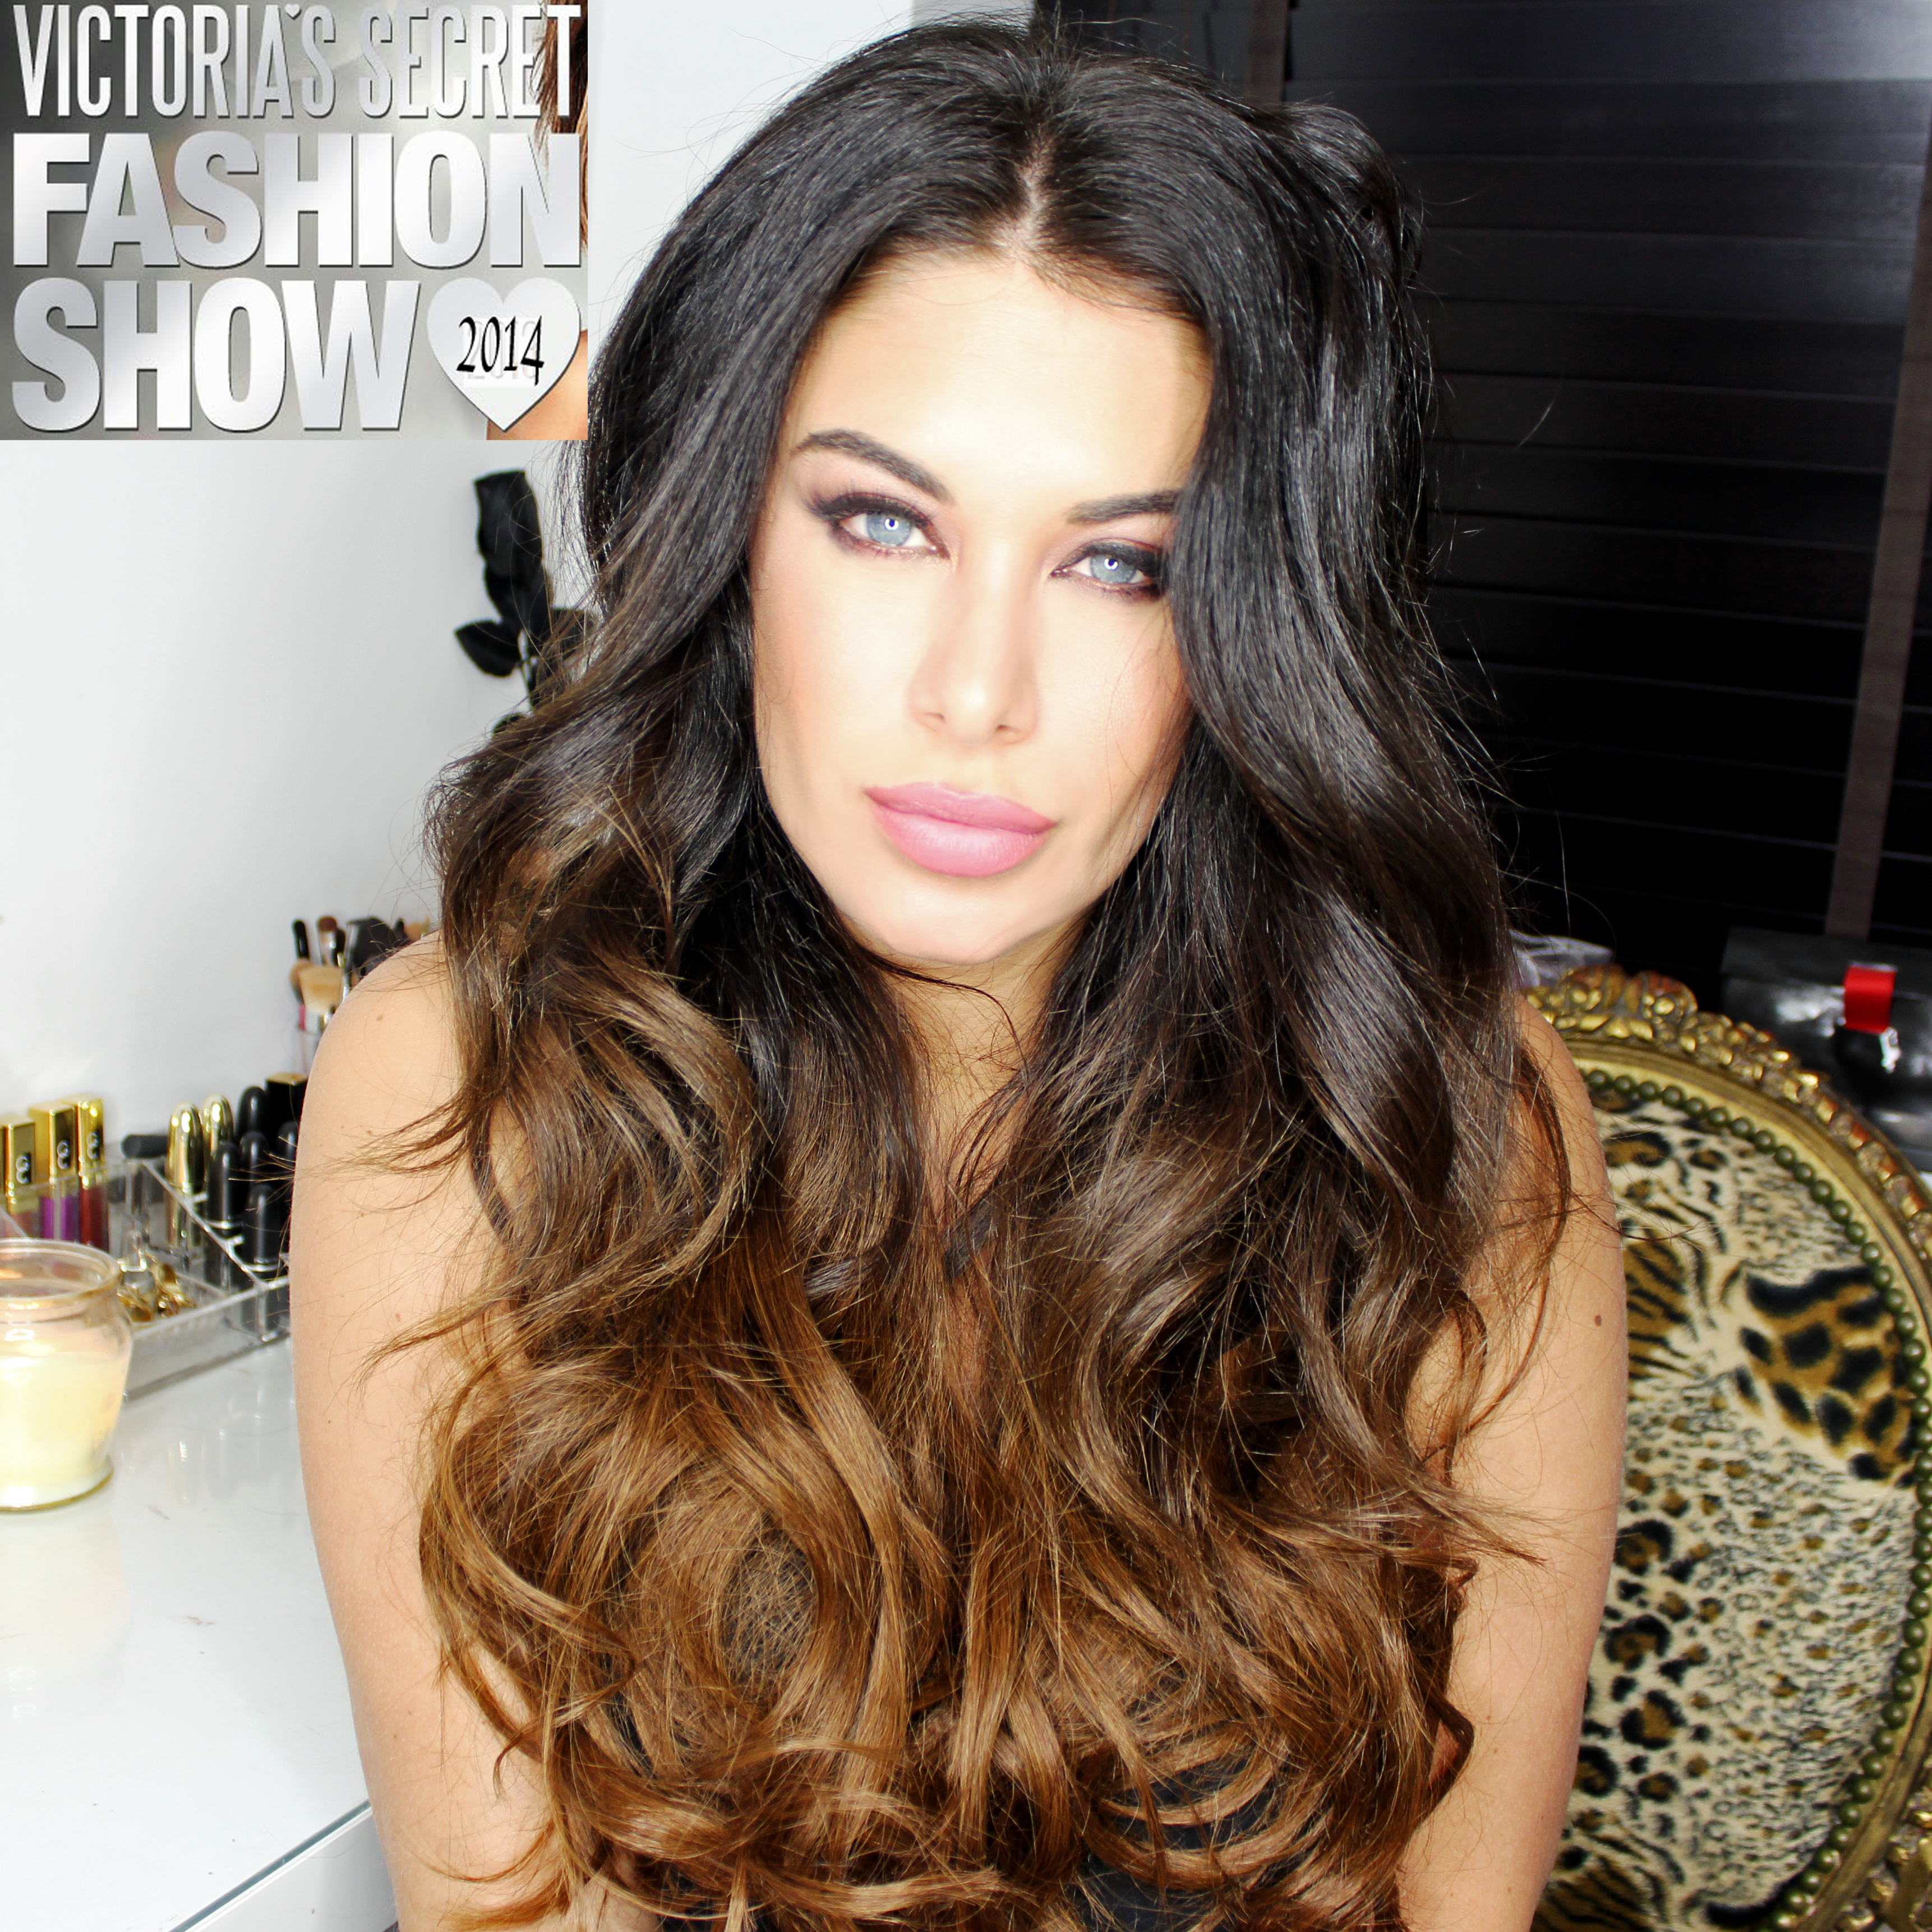 Hair2wear Christie Brinkley Hair Extension Nobody is born with supermodel looks, but that doesn't mean you can't have supermodel hair! This one-piece hair extension will quickly and easily give you a longer, fuller and more beautiful look deserving of a magazine cover.